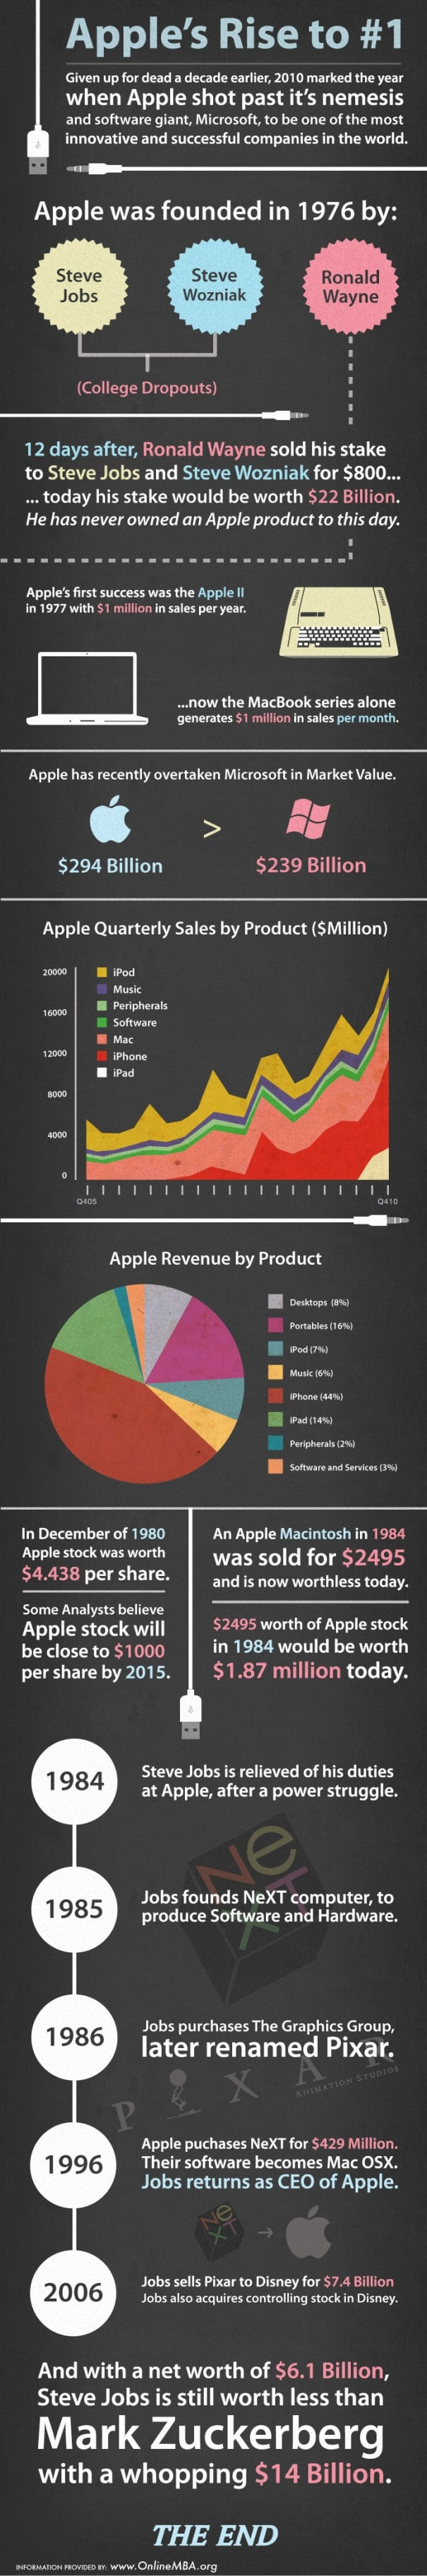 Apple's Rise To Number 1 [Infographic]